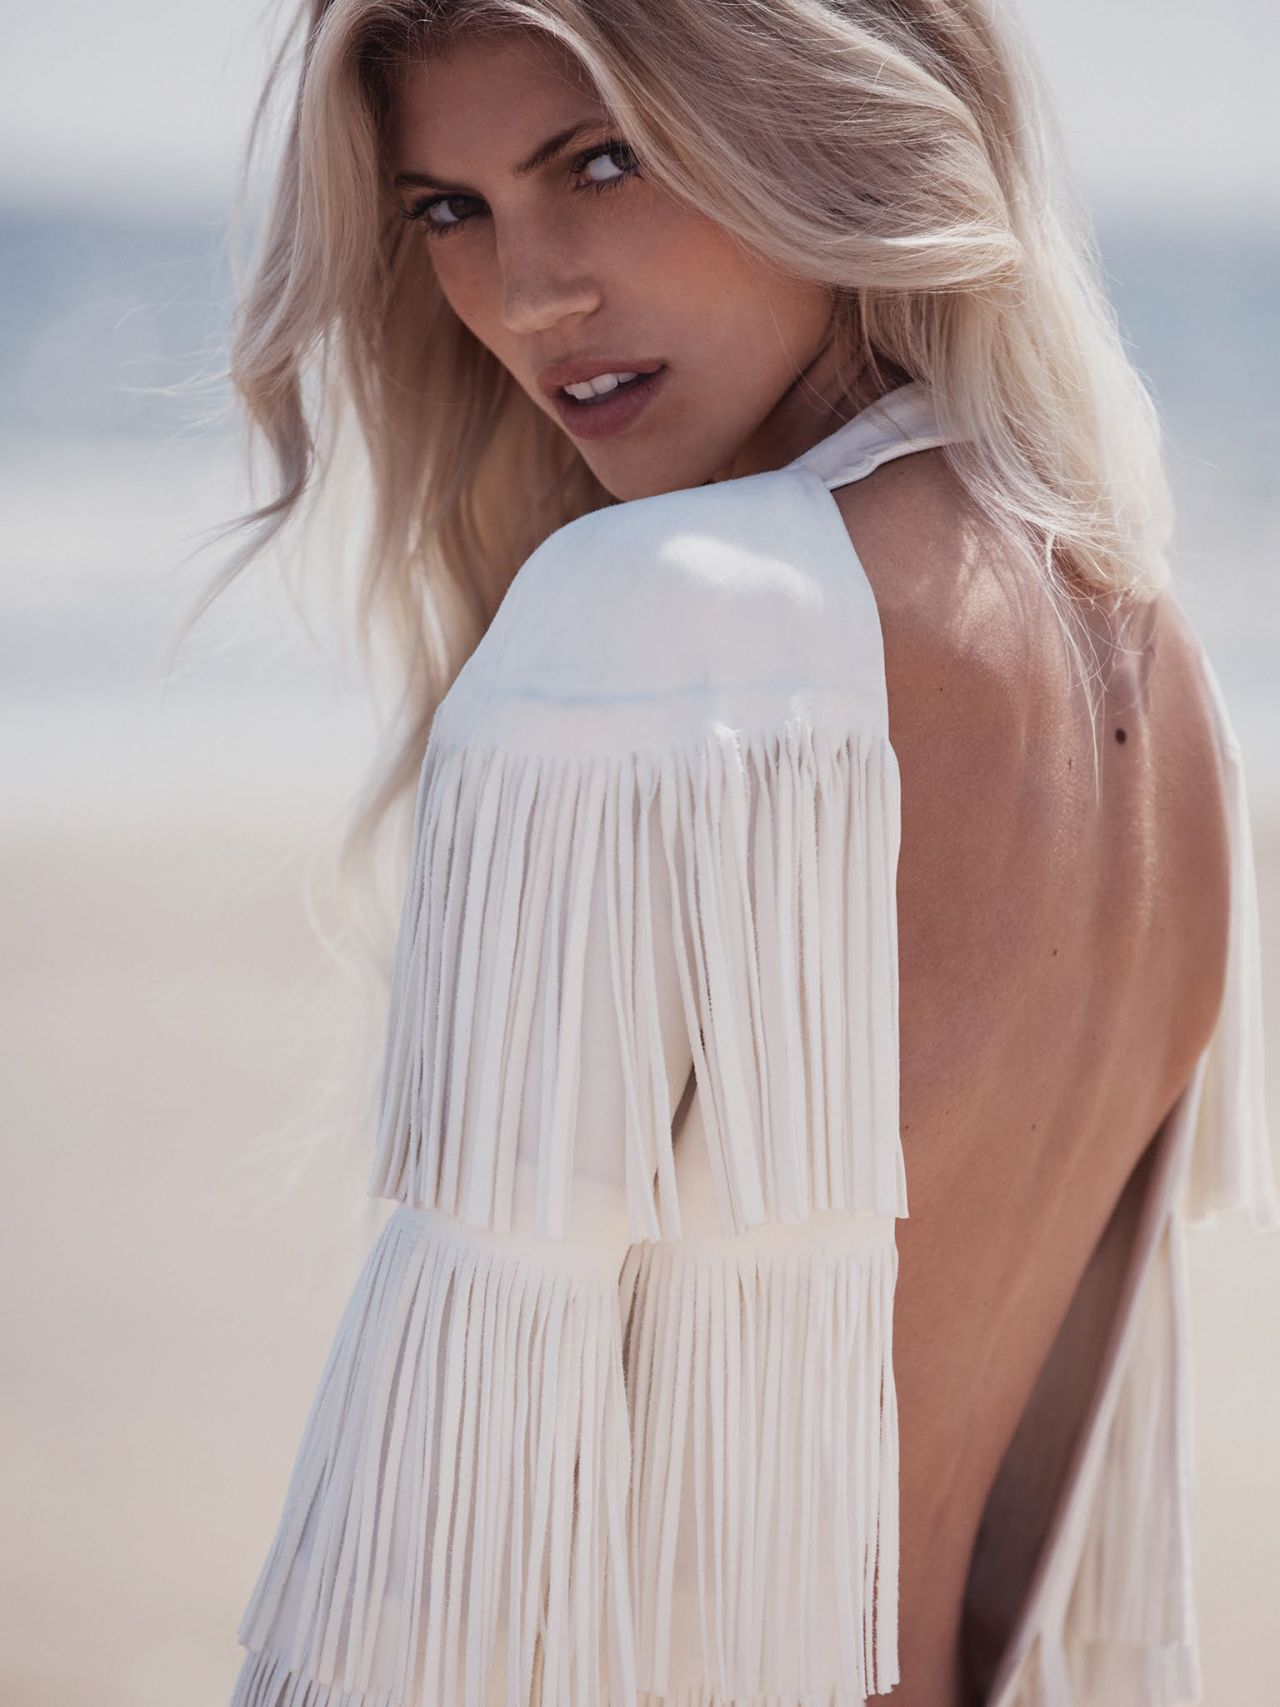 Devon Windsor Vogue Magazine Mexico November 2015